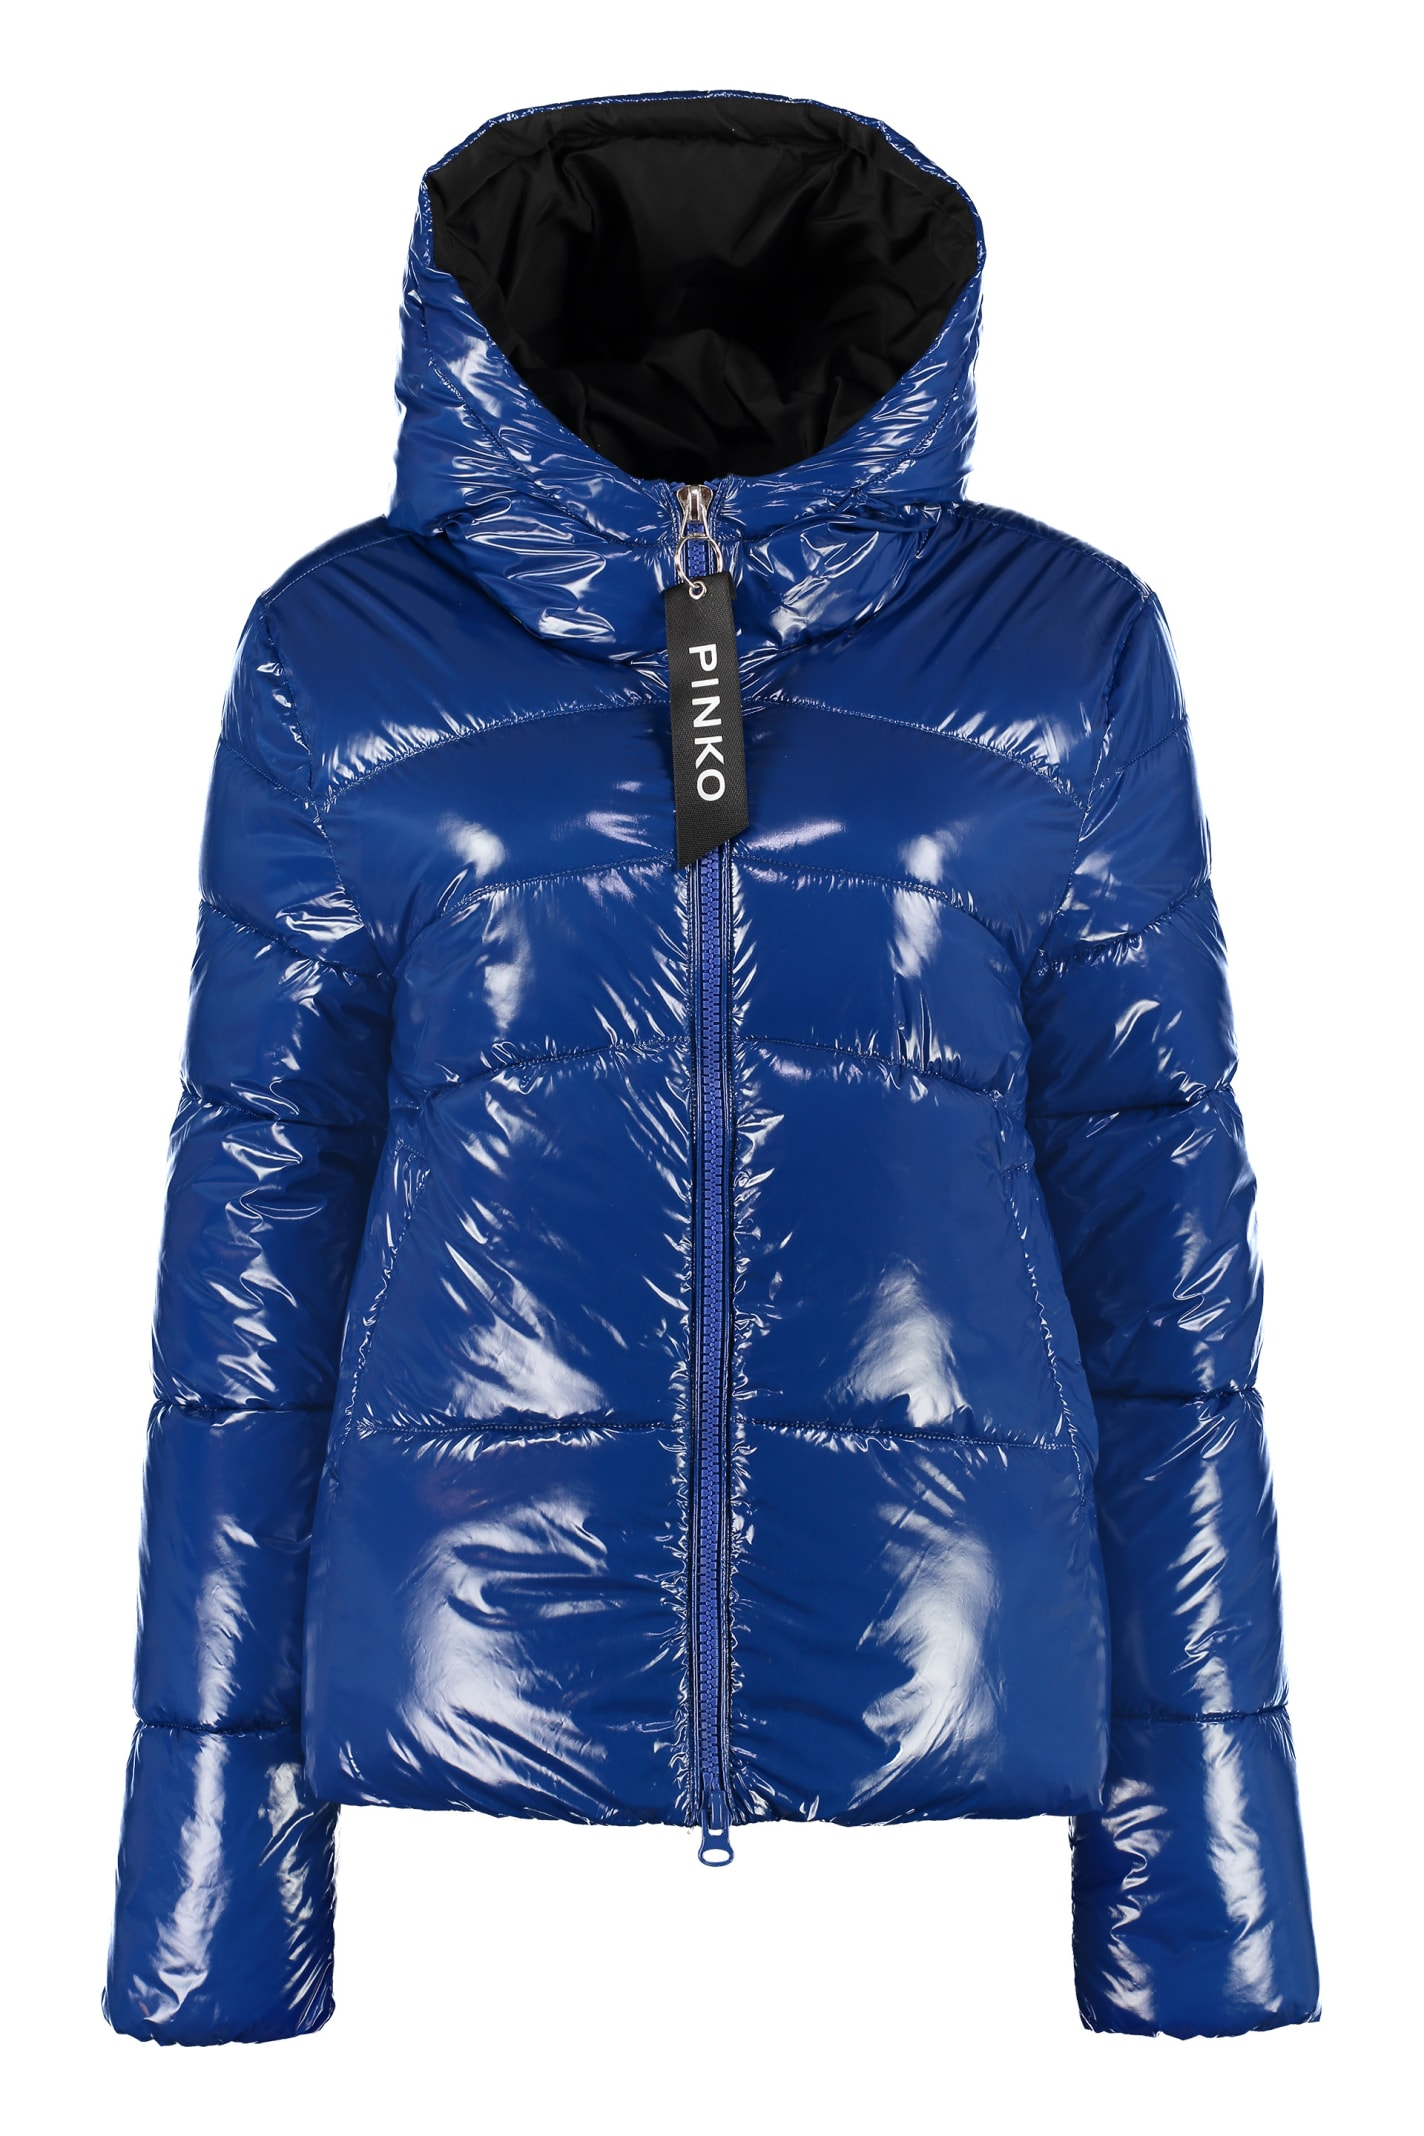 Photo of  Pinko Tradurre Hooded Padded Jacket- shop Pinko jackets online sales